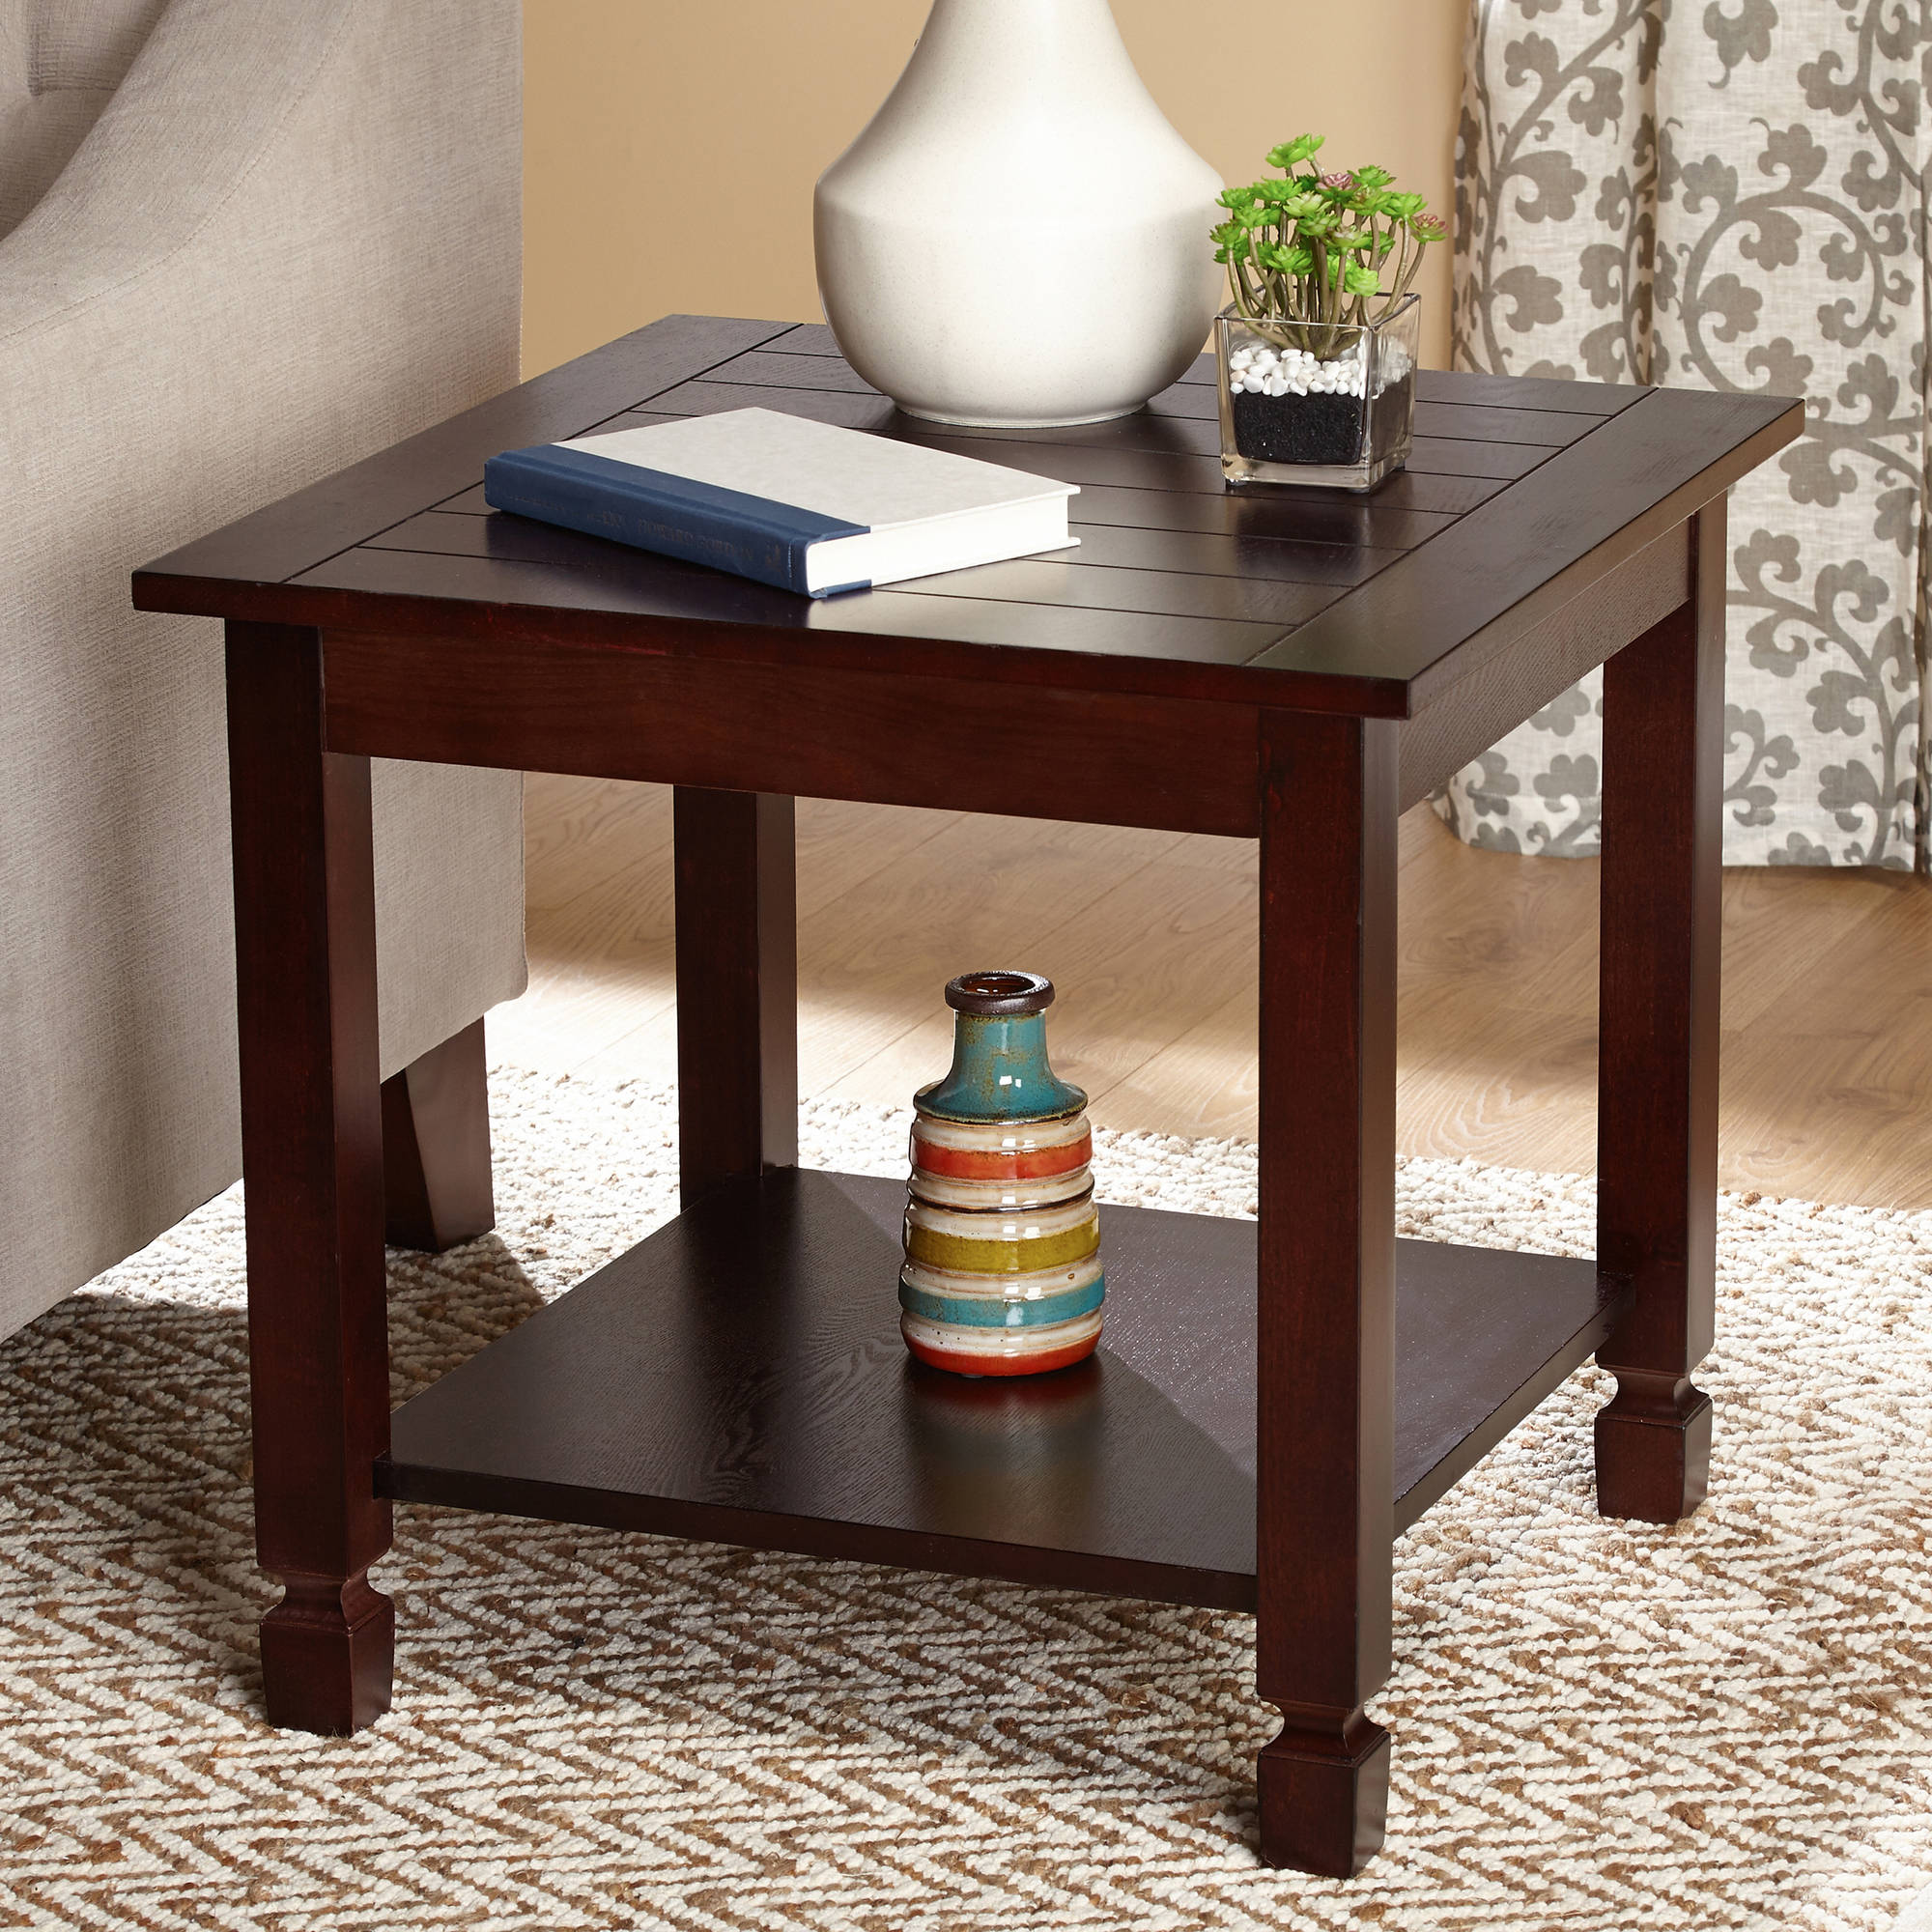 Zenith End Table Espresso & nonConfig